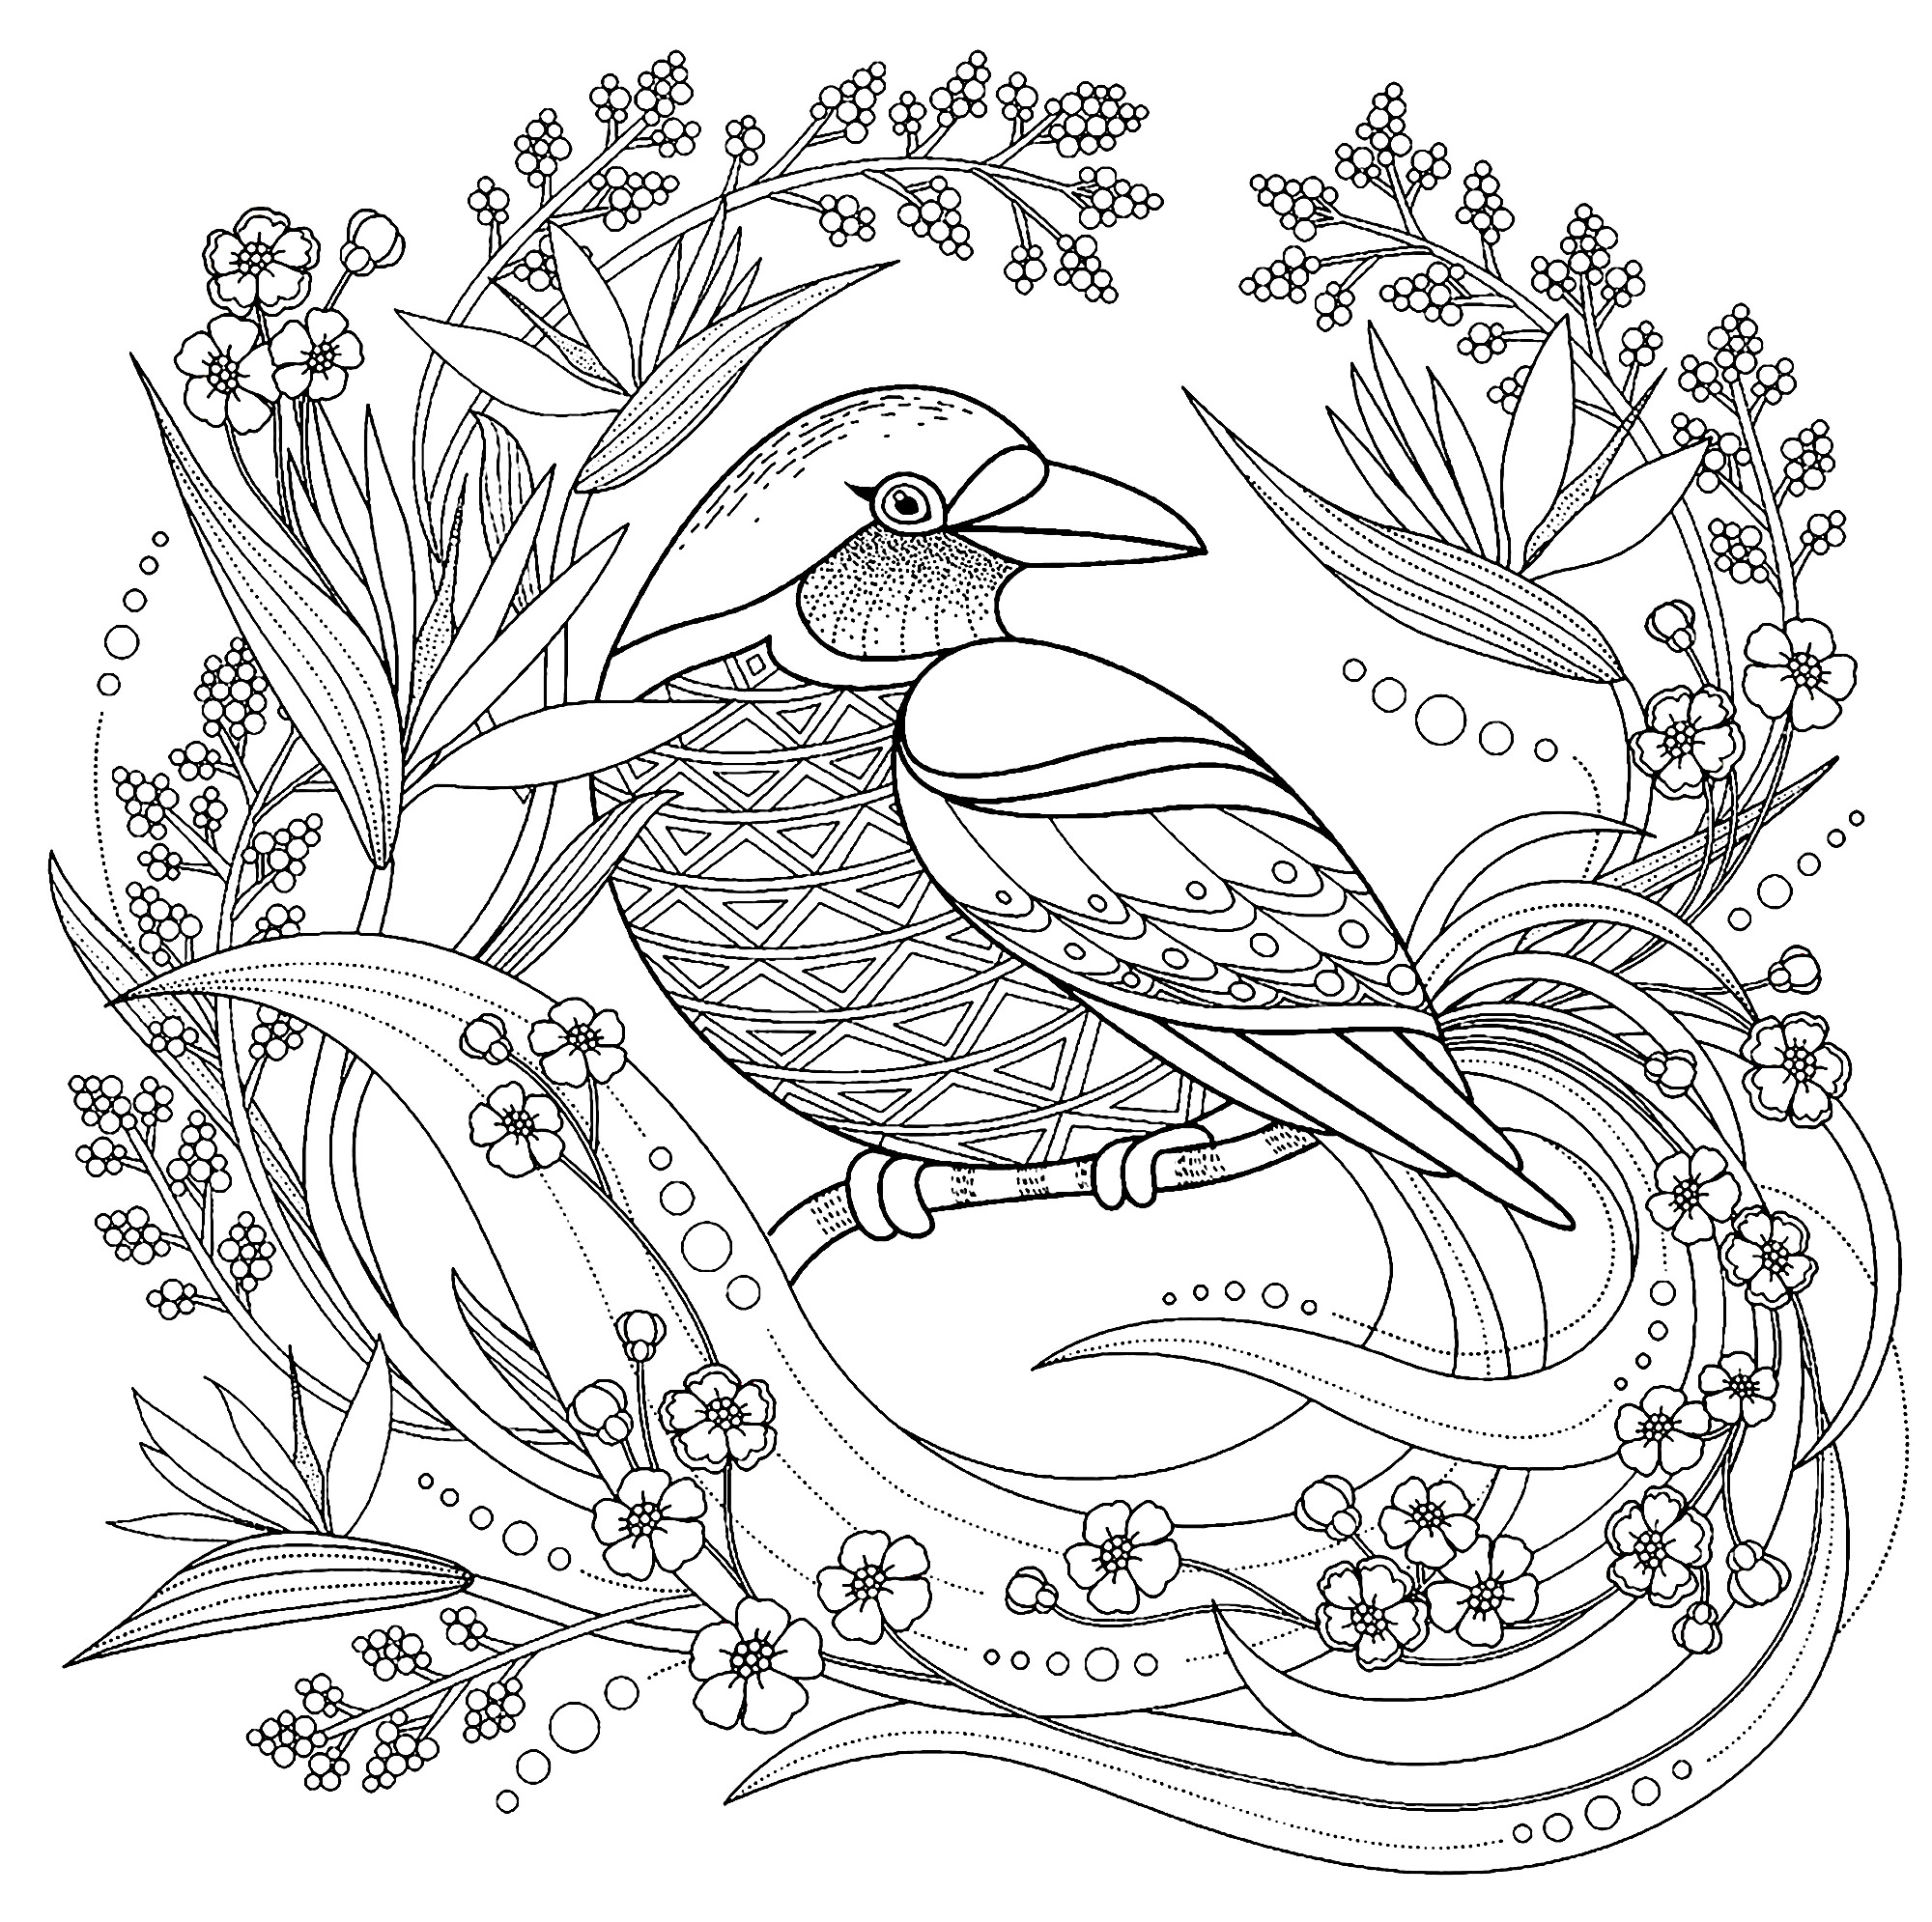 printable pictures of birds birds coloring pages of printable birds pictures